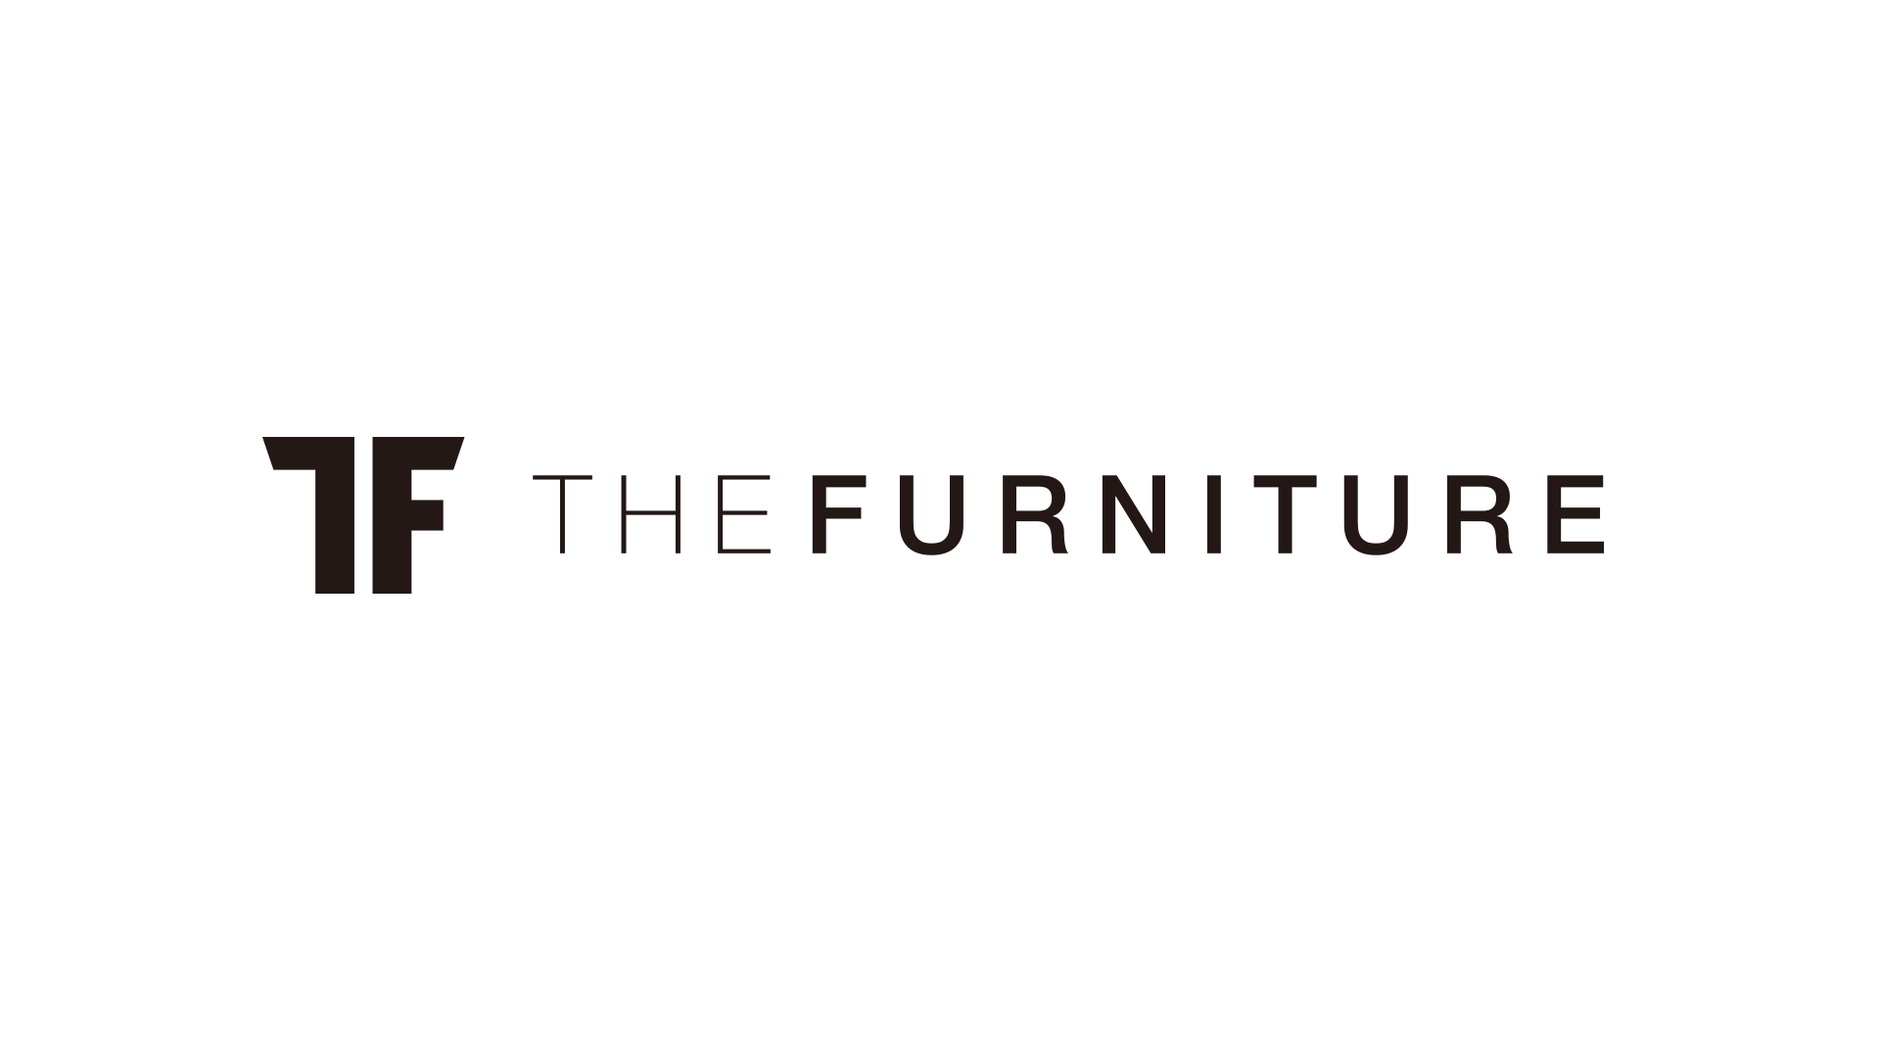 THE FURNITURE